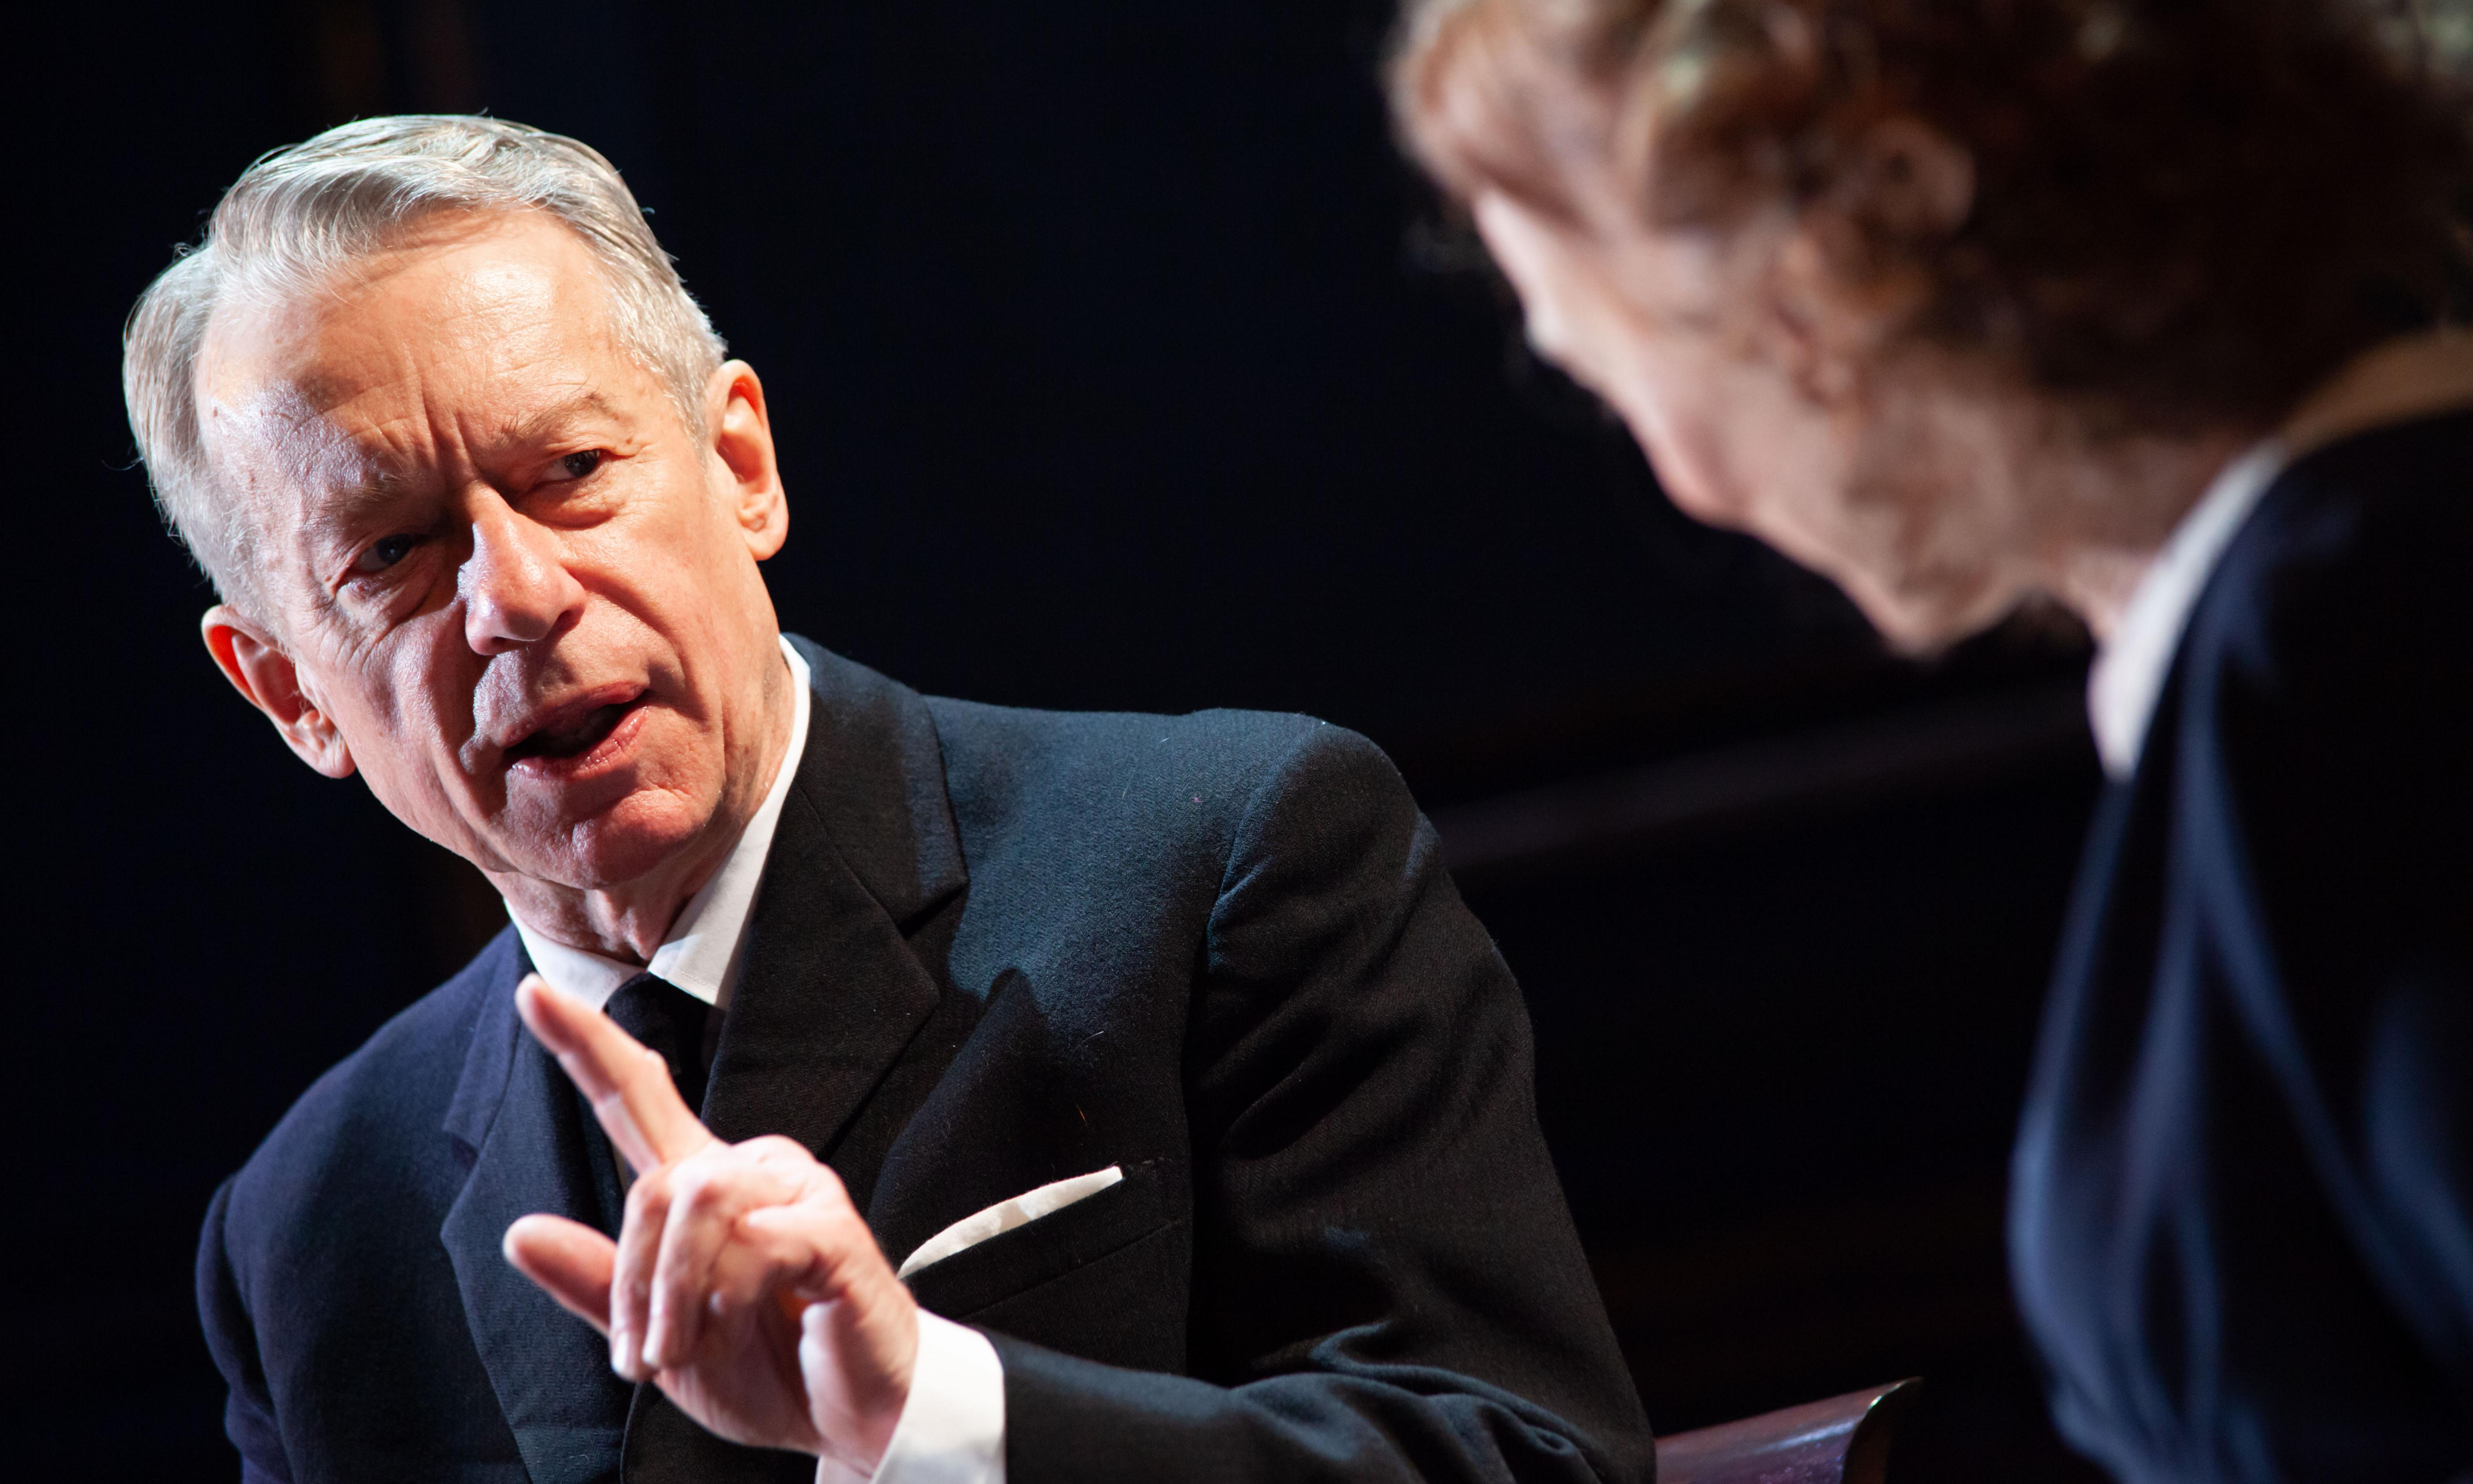 The Remains of the Day review – Ishiguro's novel makes cerebral theatre